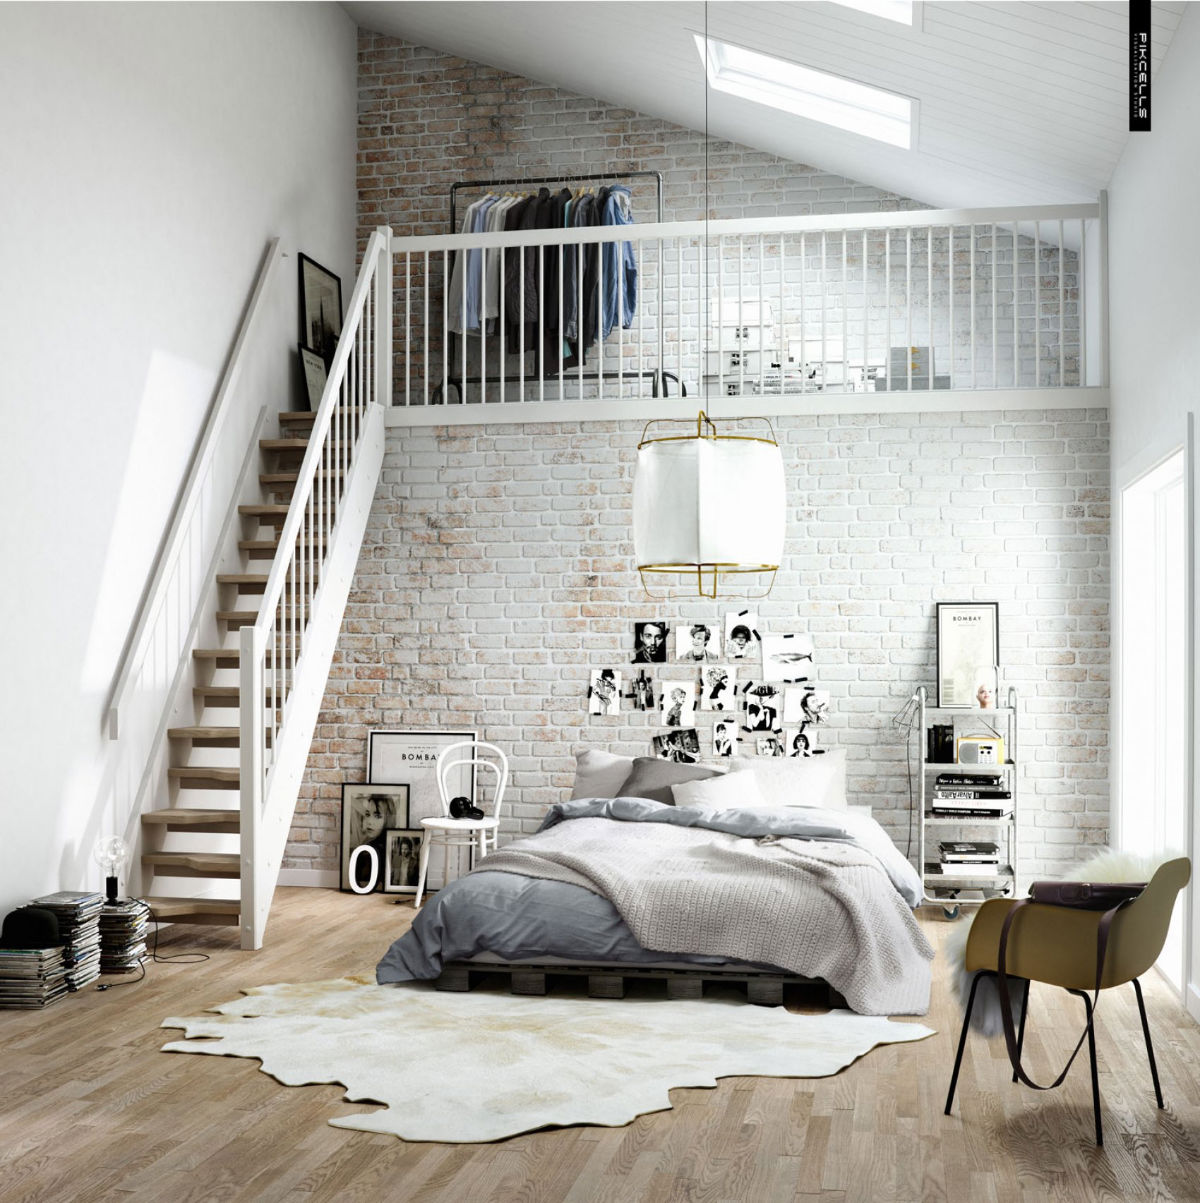 6    Designer  Pikcells. Bedrooms With Exposed Brick Walls